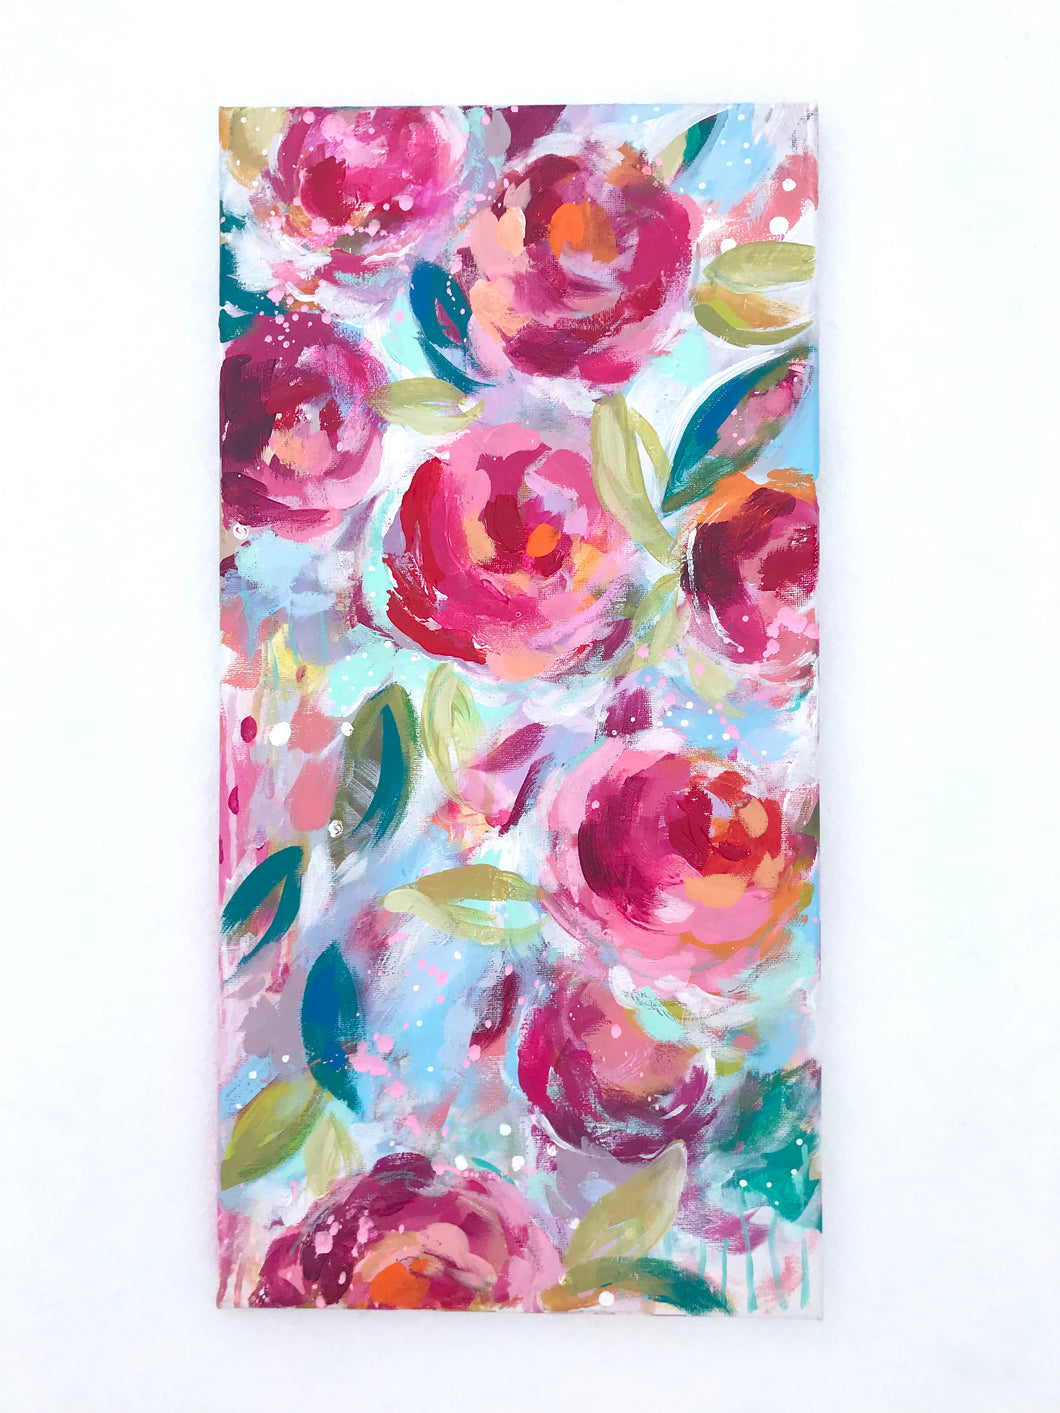 Garden Party 4 Original Floral Painting on 10x20 inch Canvas - Bethany Joy Art